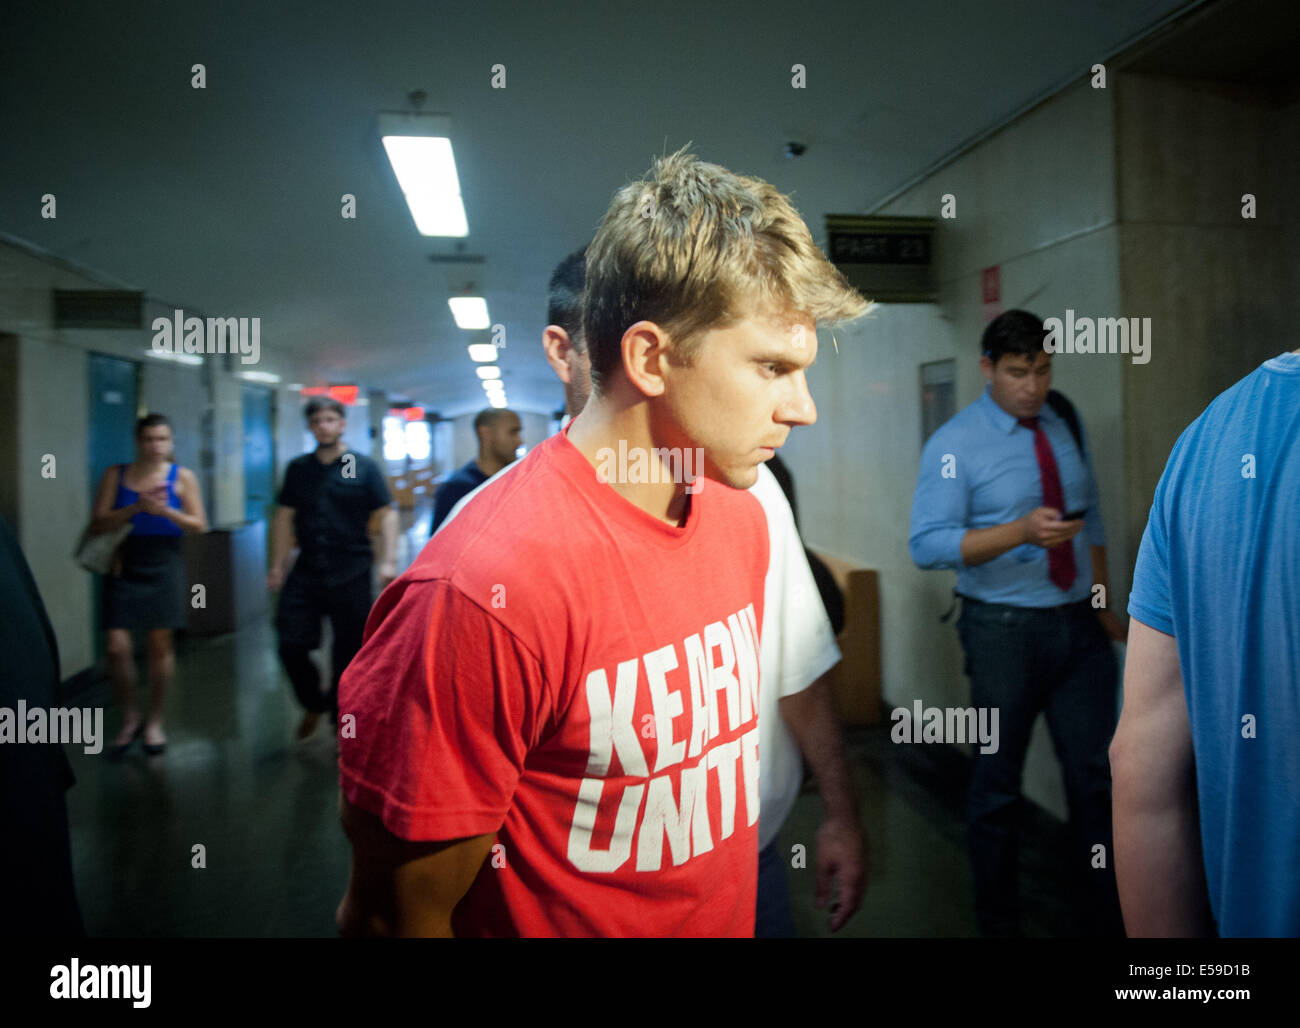 Manhattan, New York, USA. 23rd July, 2014. BRYAN CAPTUO arrives for arraignment on charges as Manhattan District - Stock Image